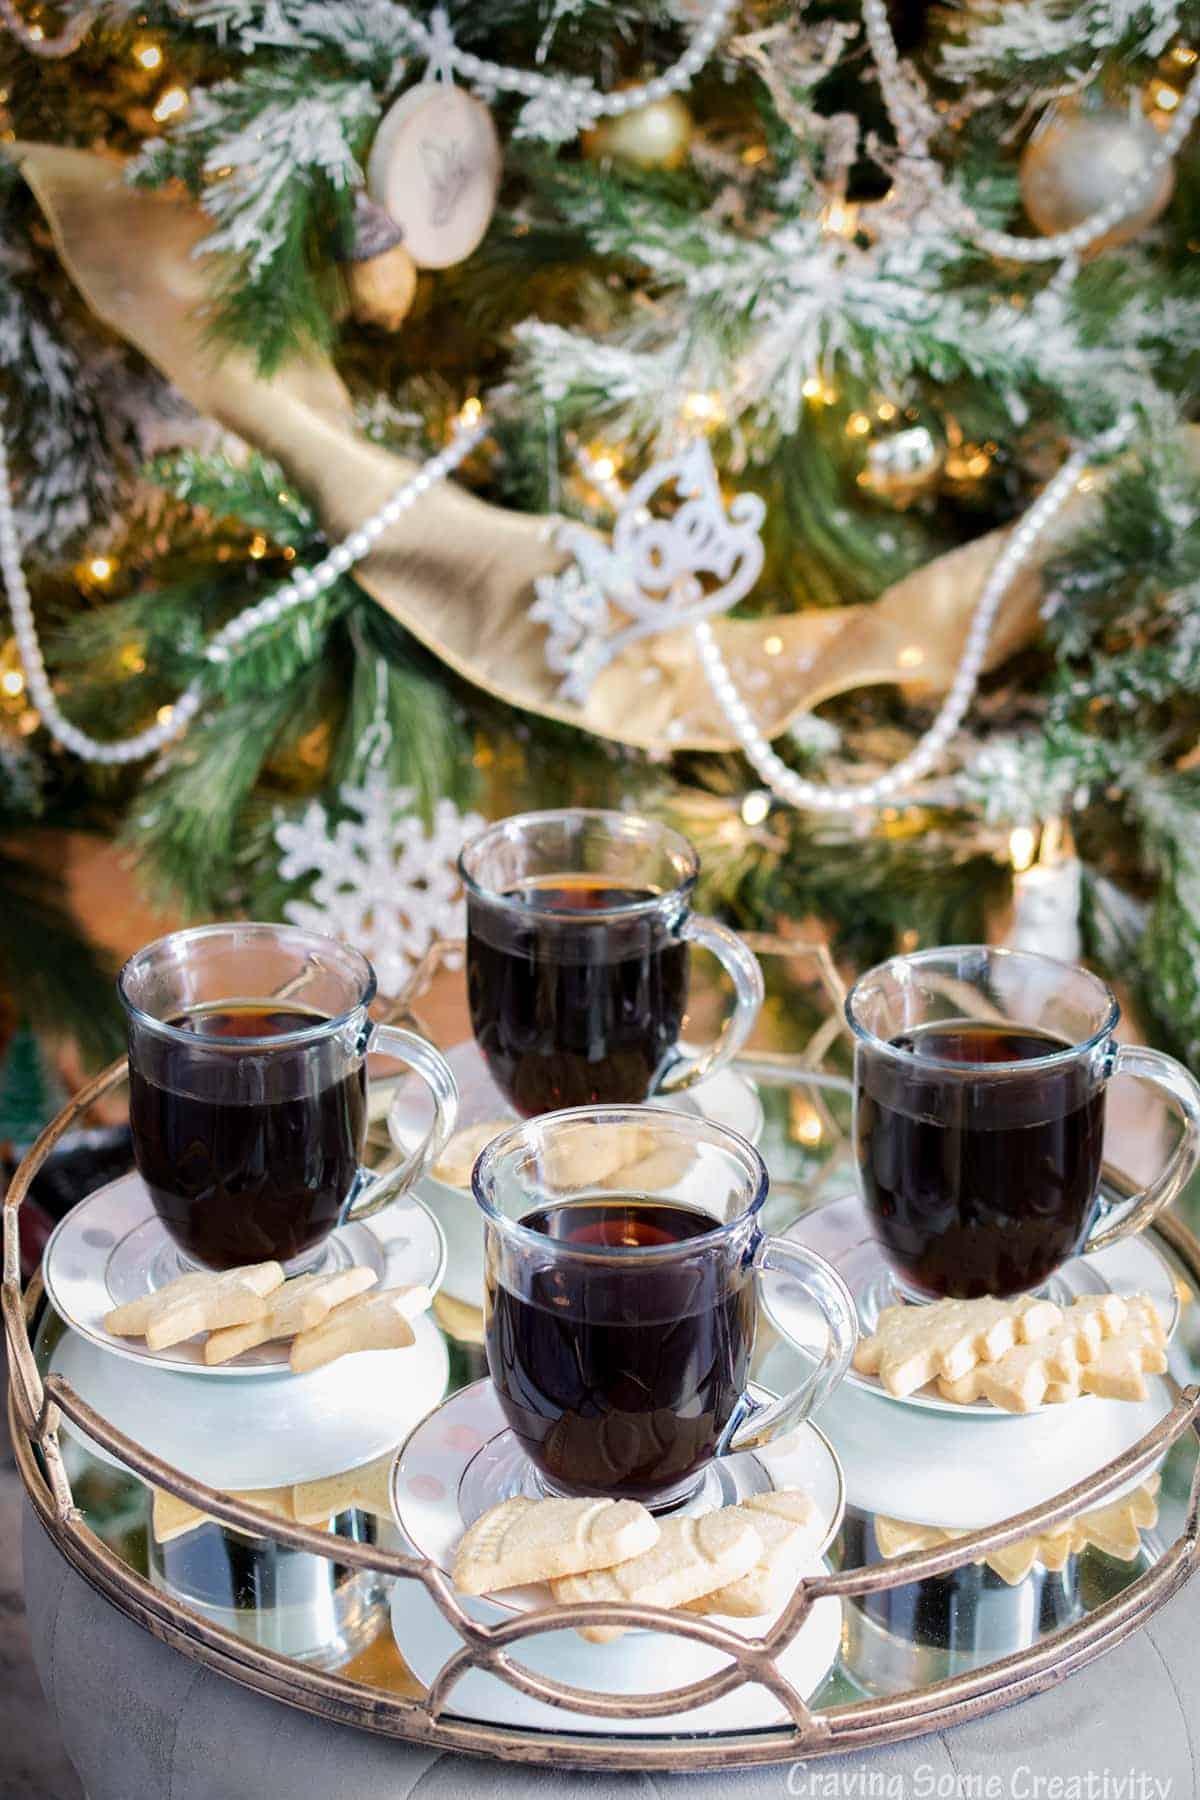 Coffee in mugs with a signature coffee drink and served with small cookies on the side. White and gold accented tree in background.